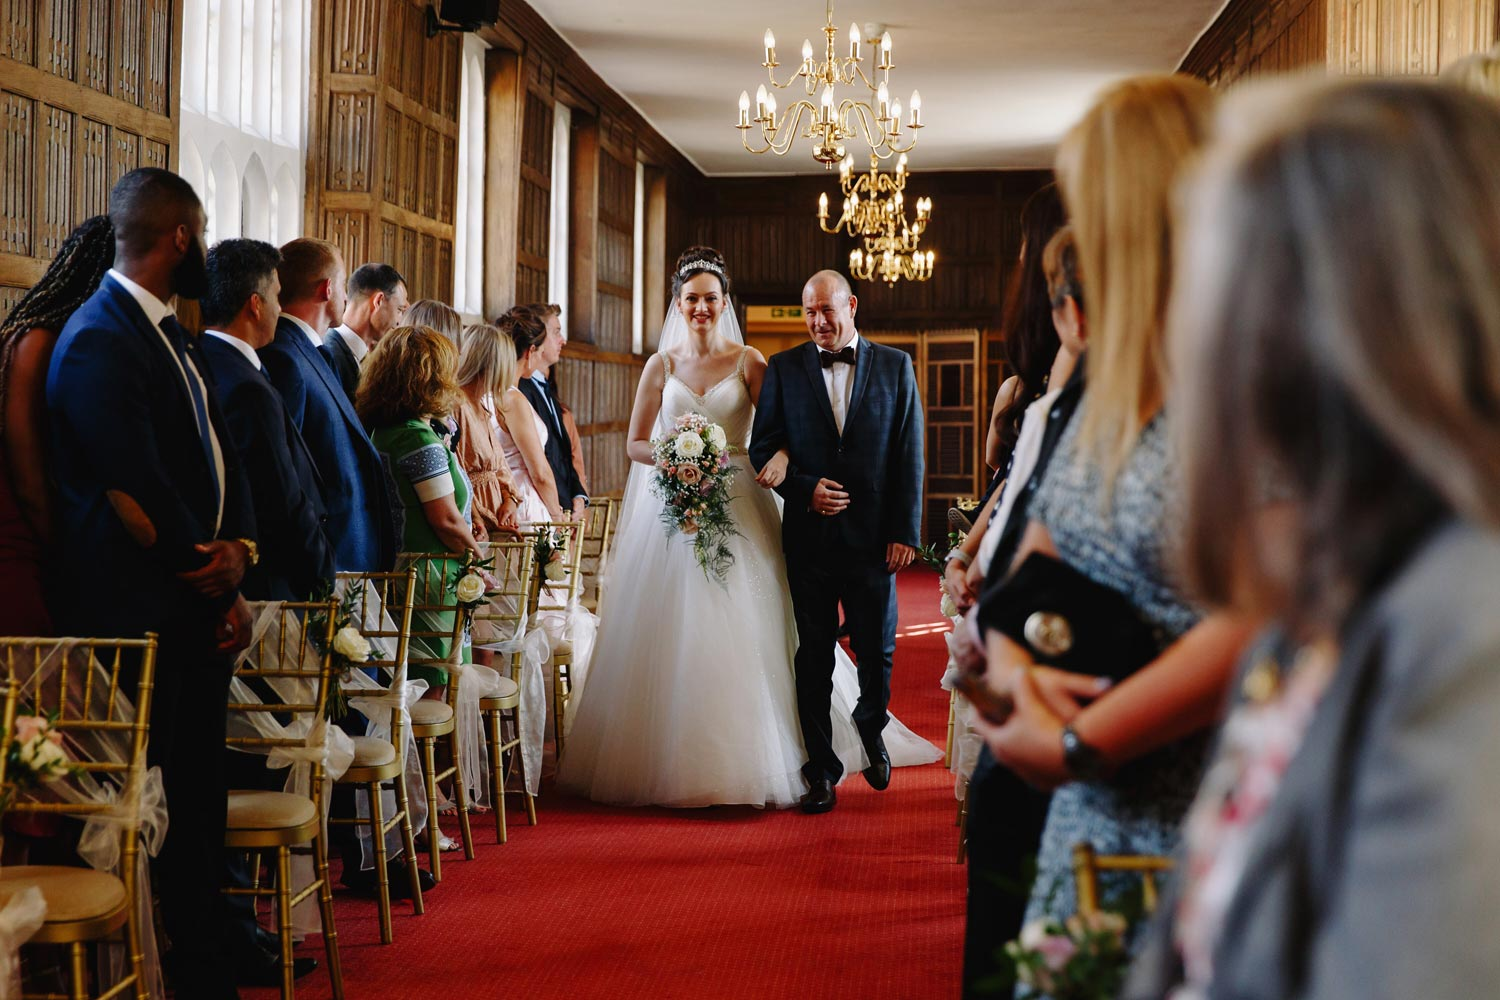 A bride and her fatehr walk down the aisle at Gosfield Hall